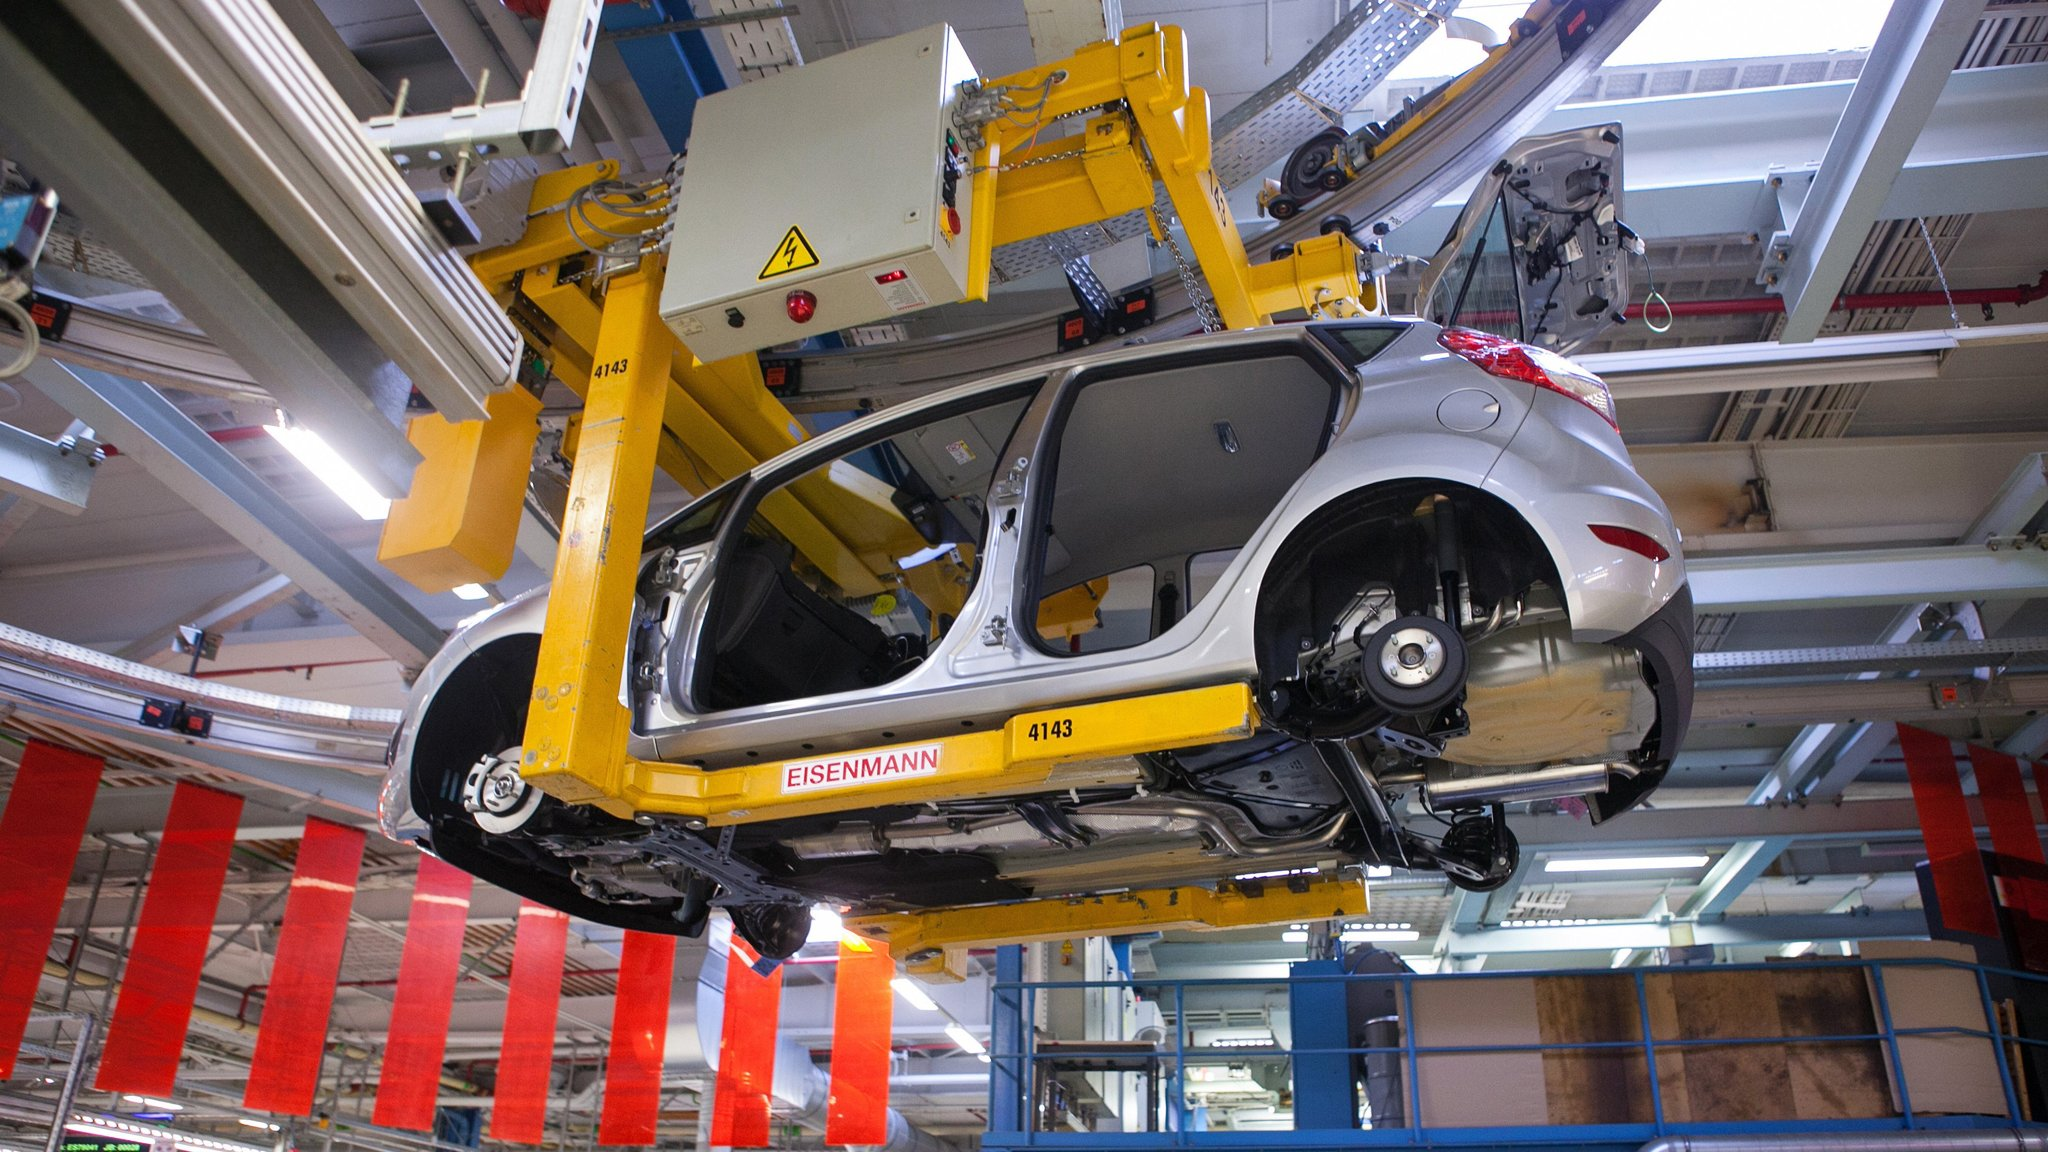 Car industry woes weigh on Germany's prospects | Financial Times